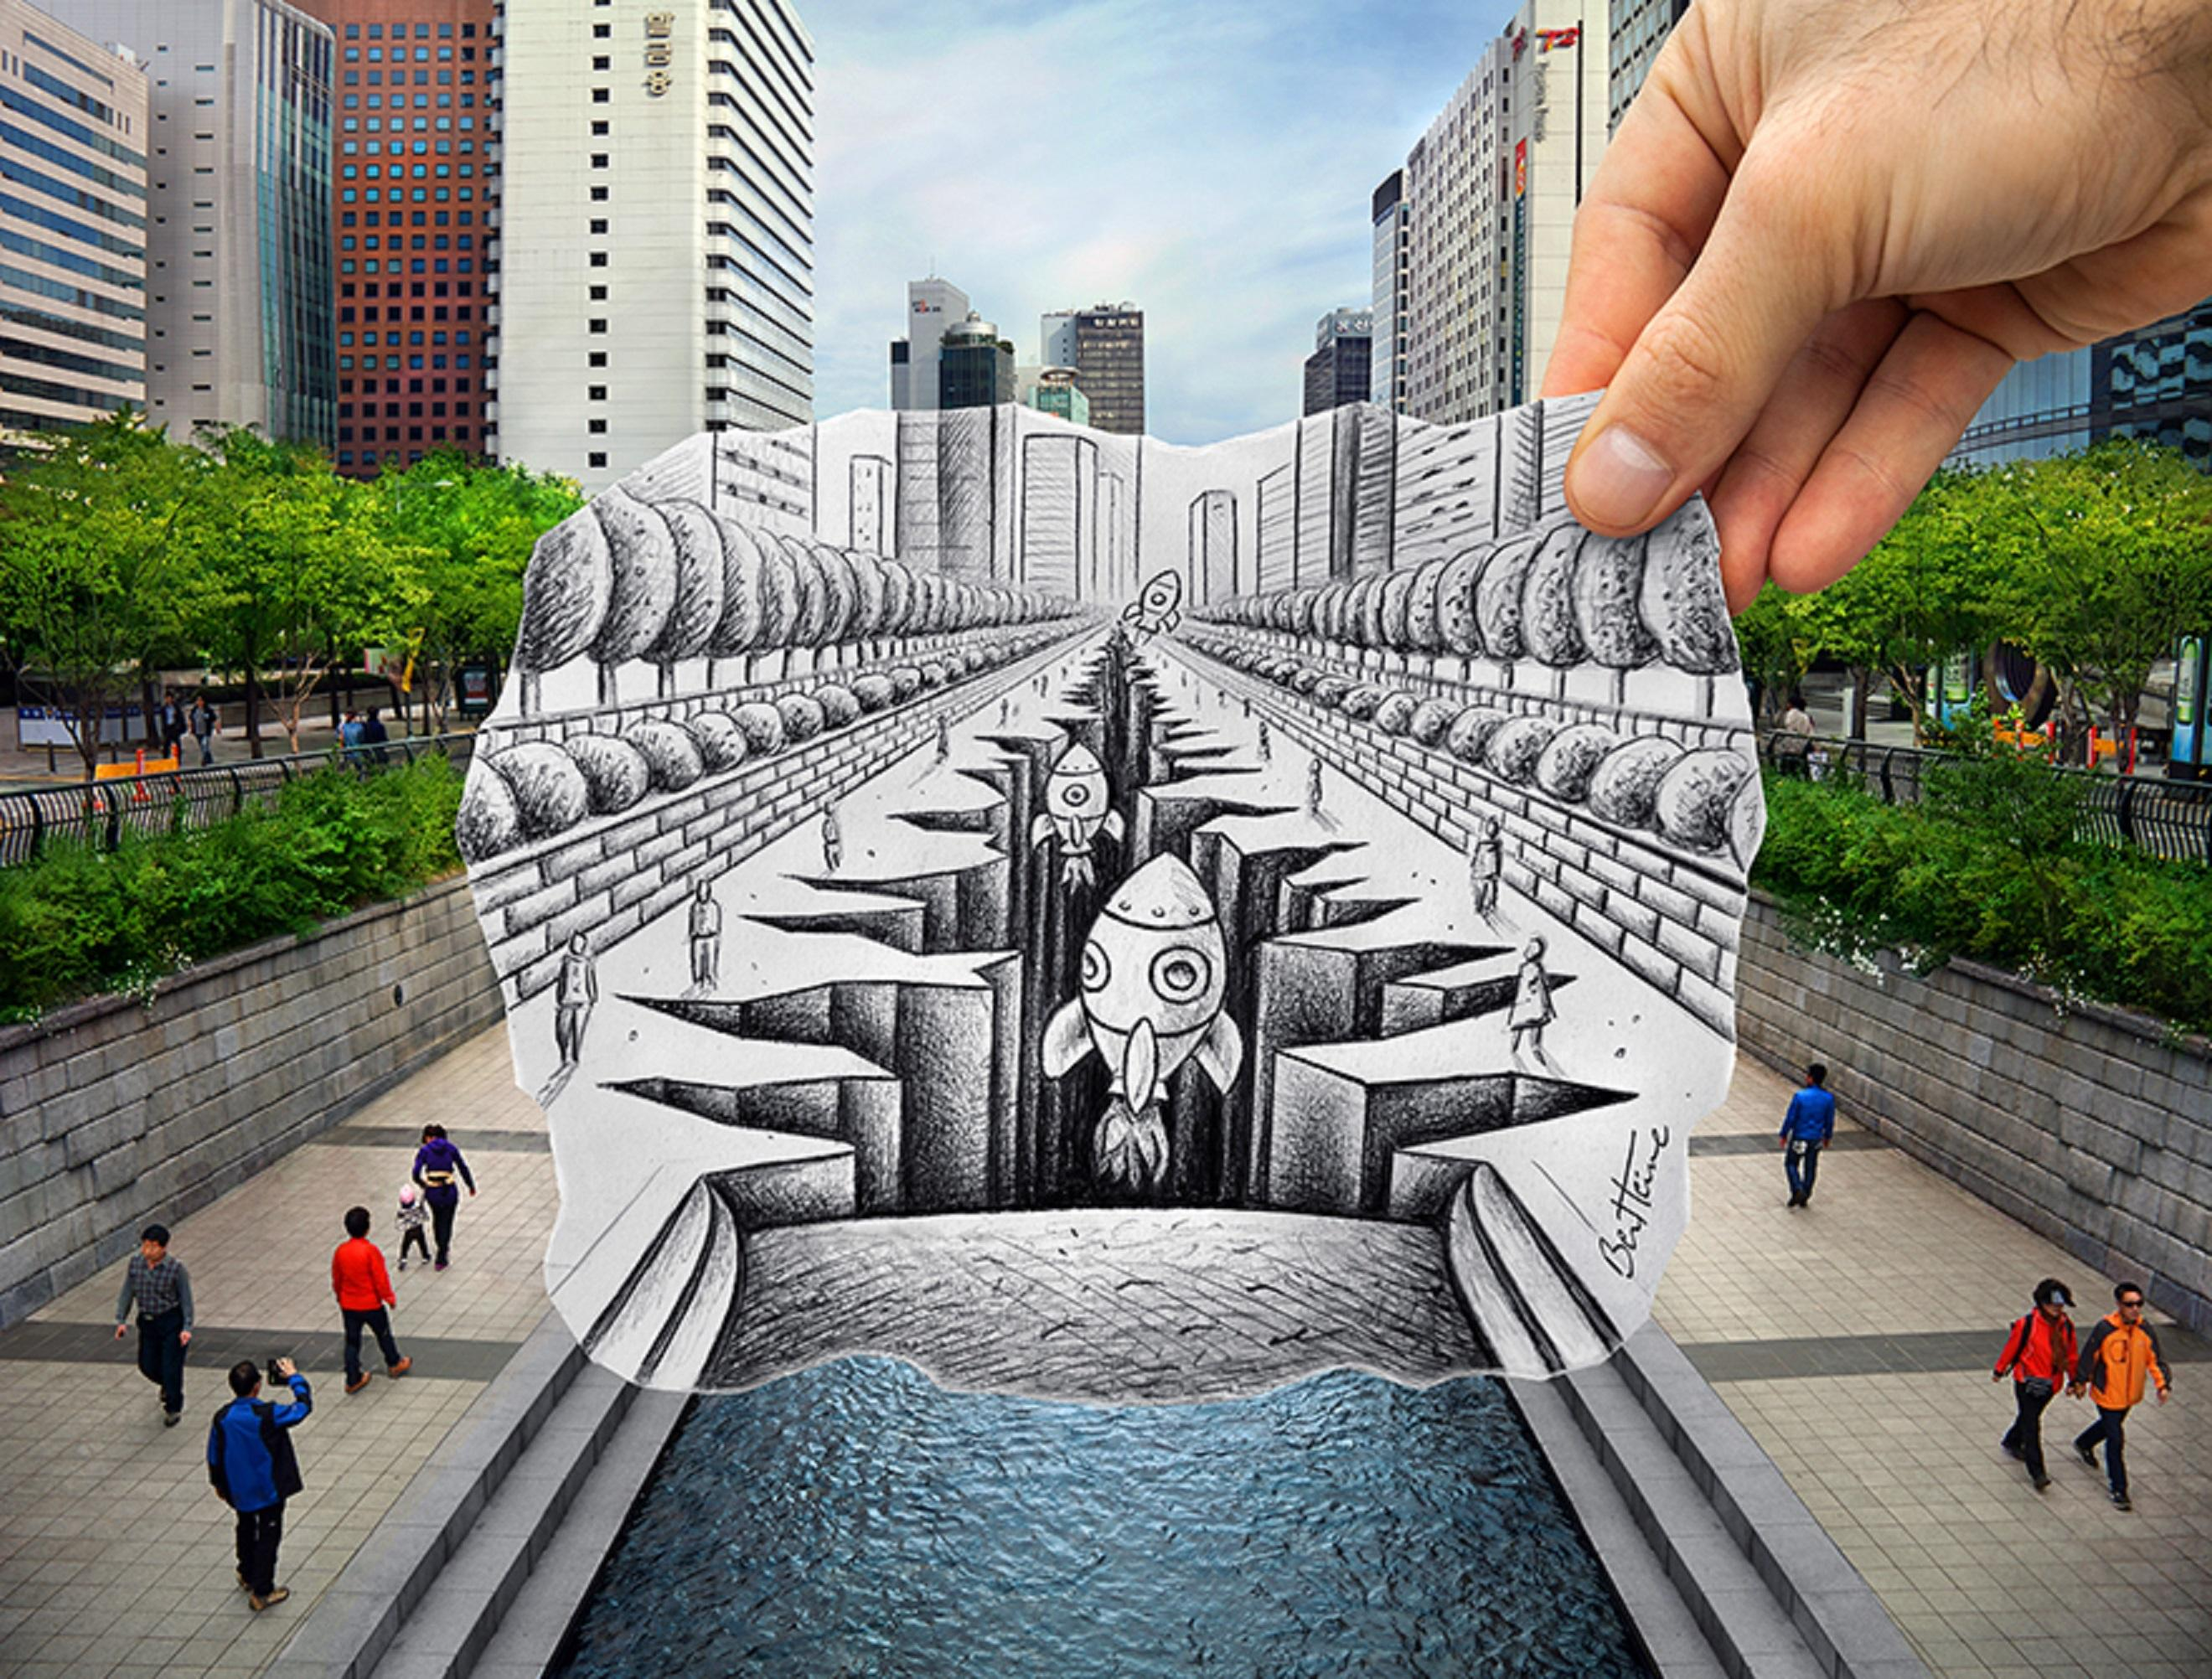 Pencil Vs Camera Space Shuttles Taking Off From The Heart Of Seoul Art By Ben Heine